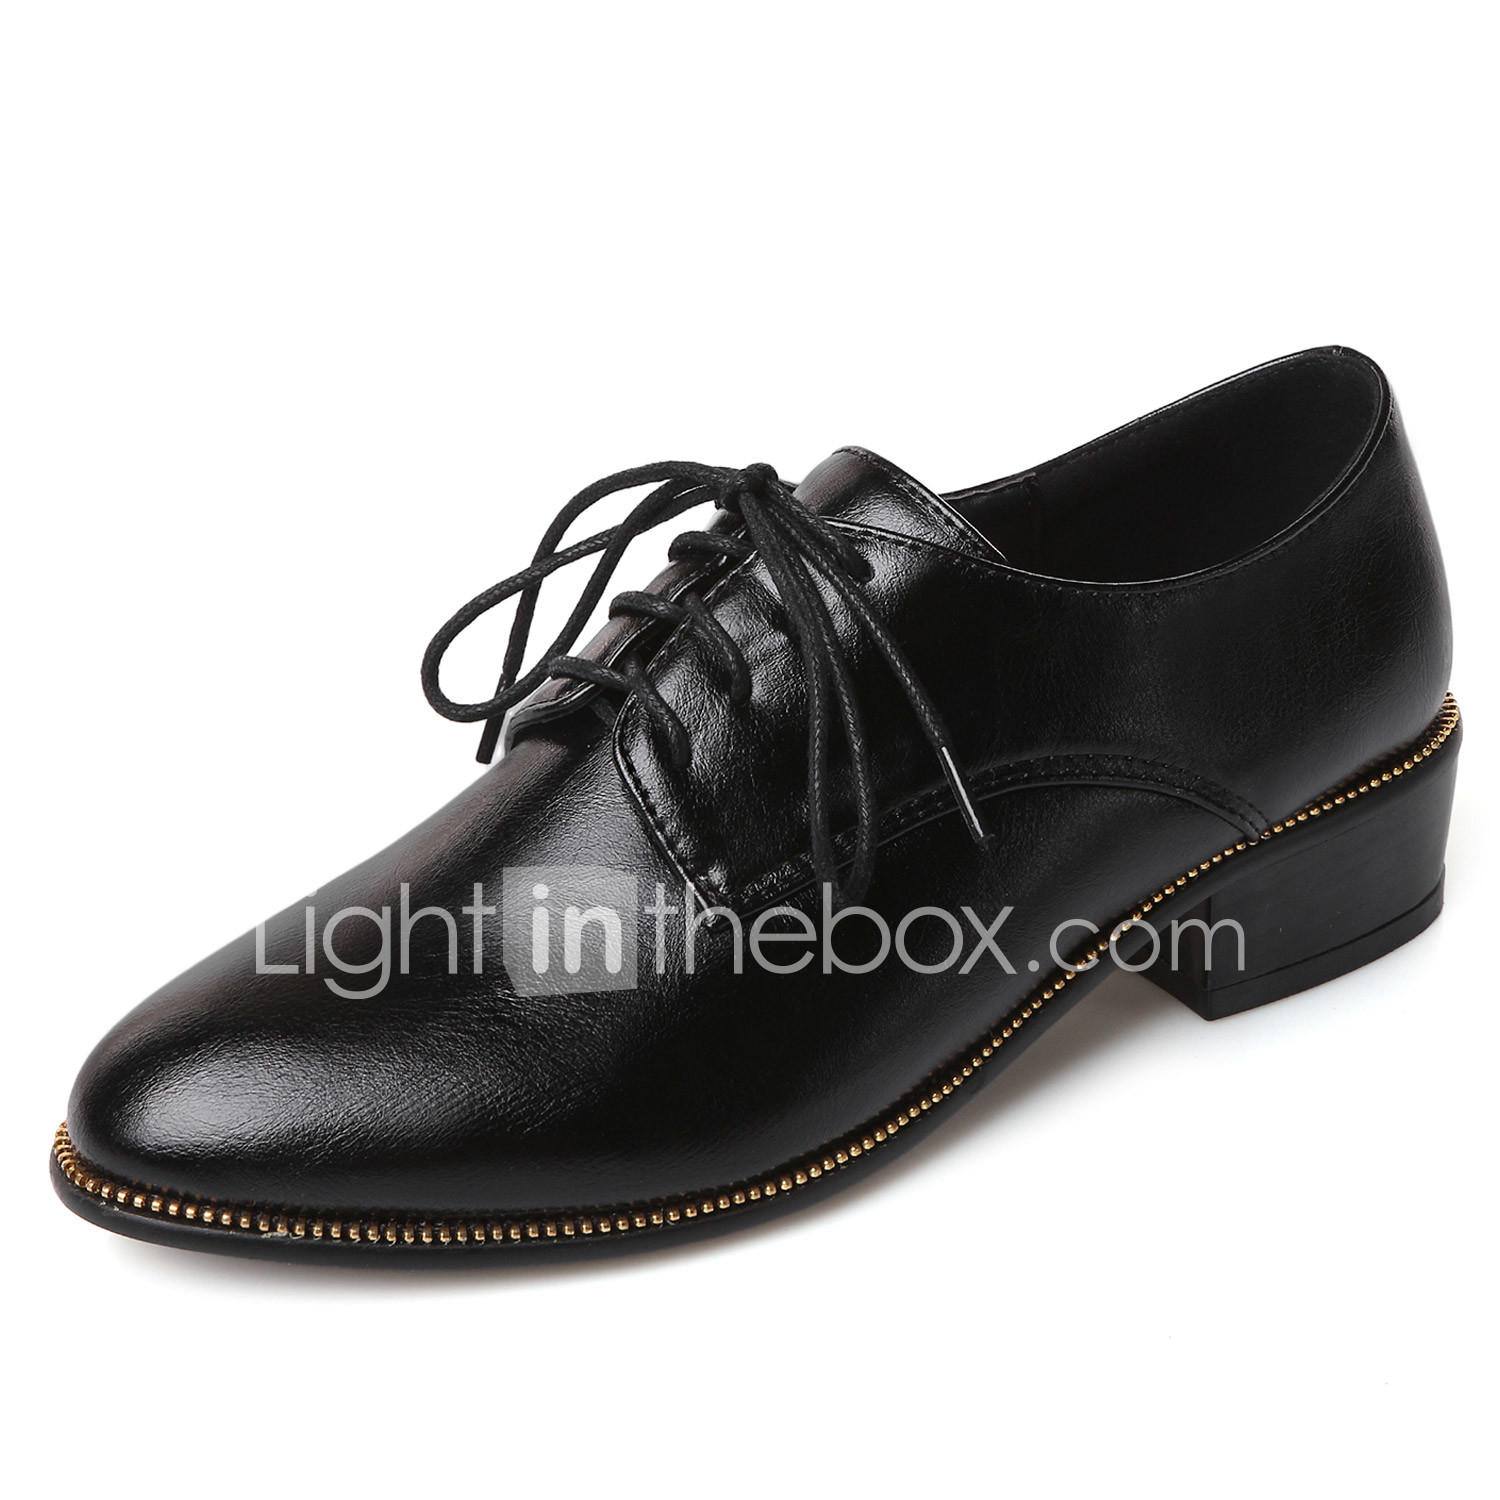 Women's Shoes Spring/Summer/Fall/Winter Platform/Round Toe Oxfords Office &